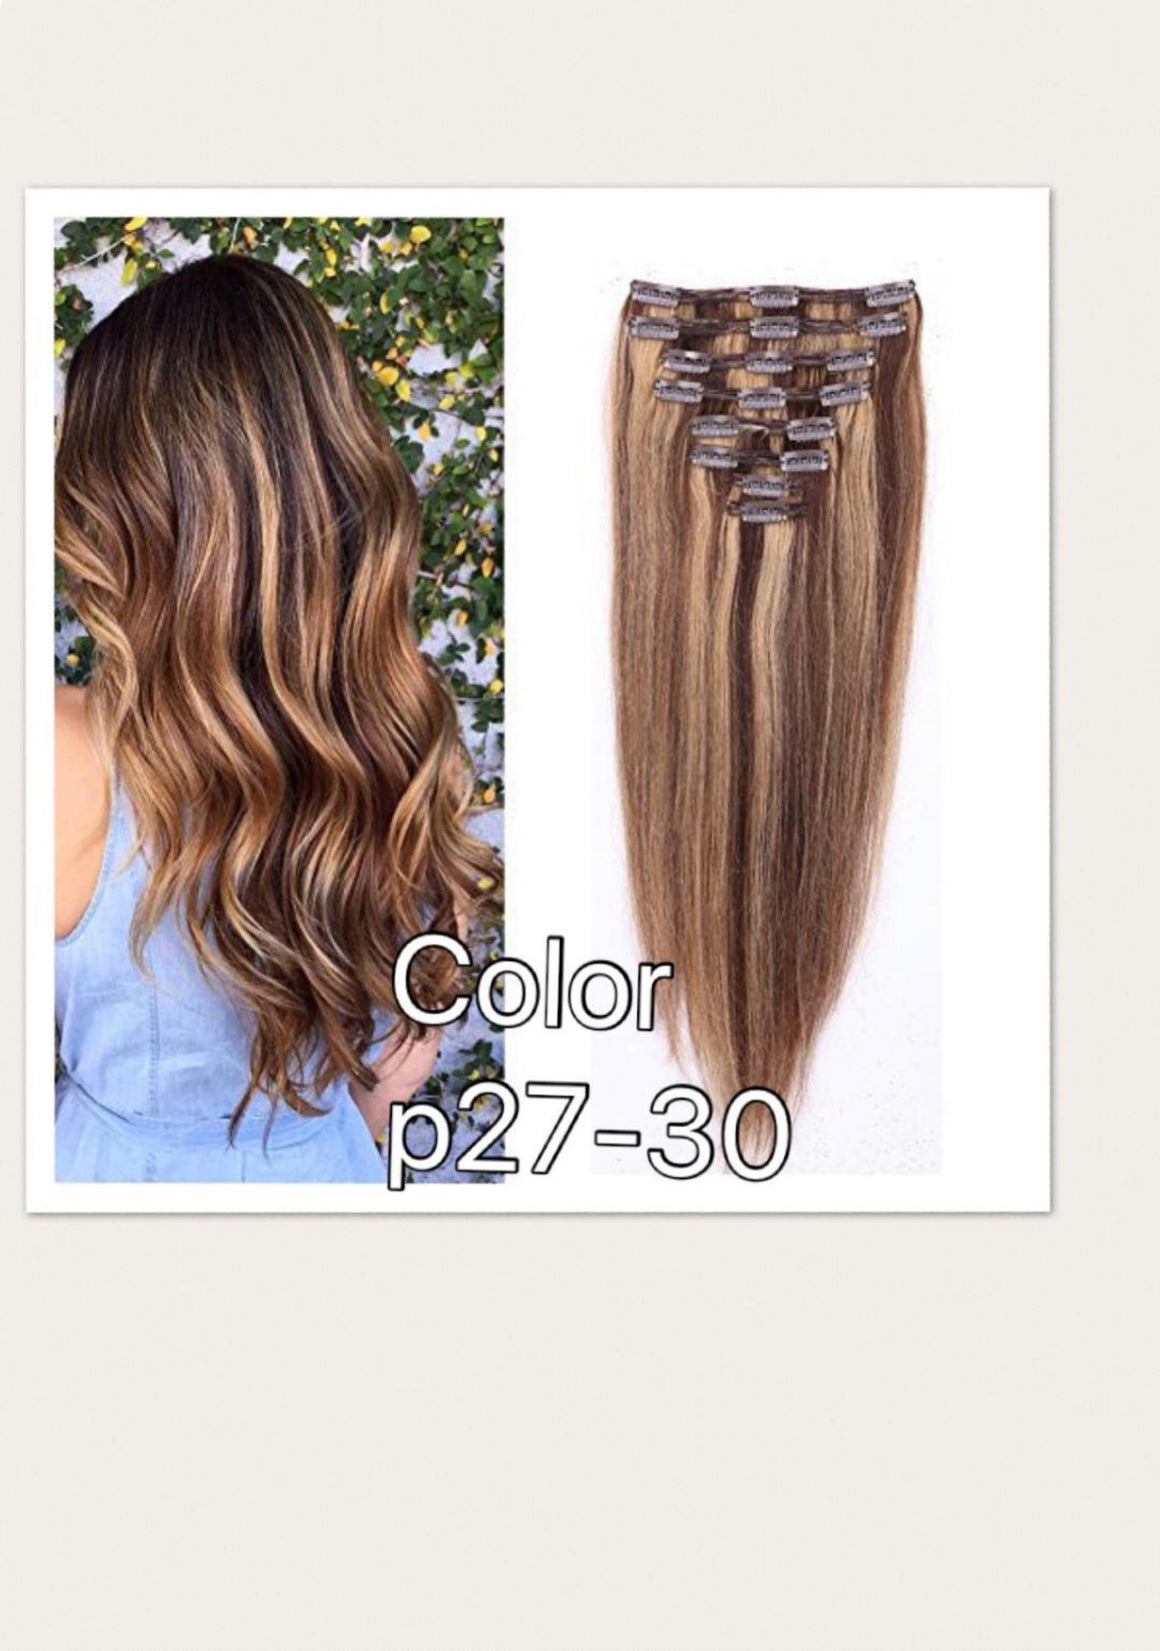 Straight hair clip ins in colors 1,30, P27-30, 613  in Brazillian, European,and Chinese. - mslhair